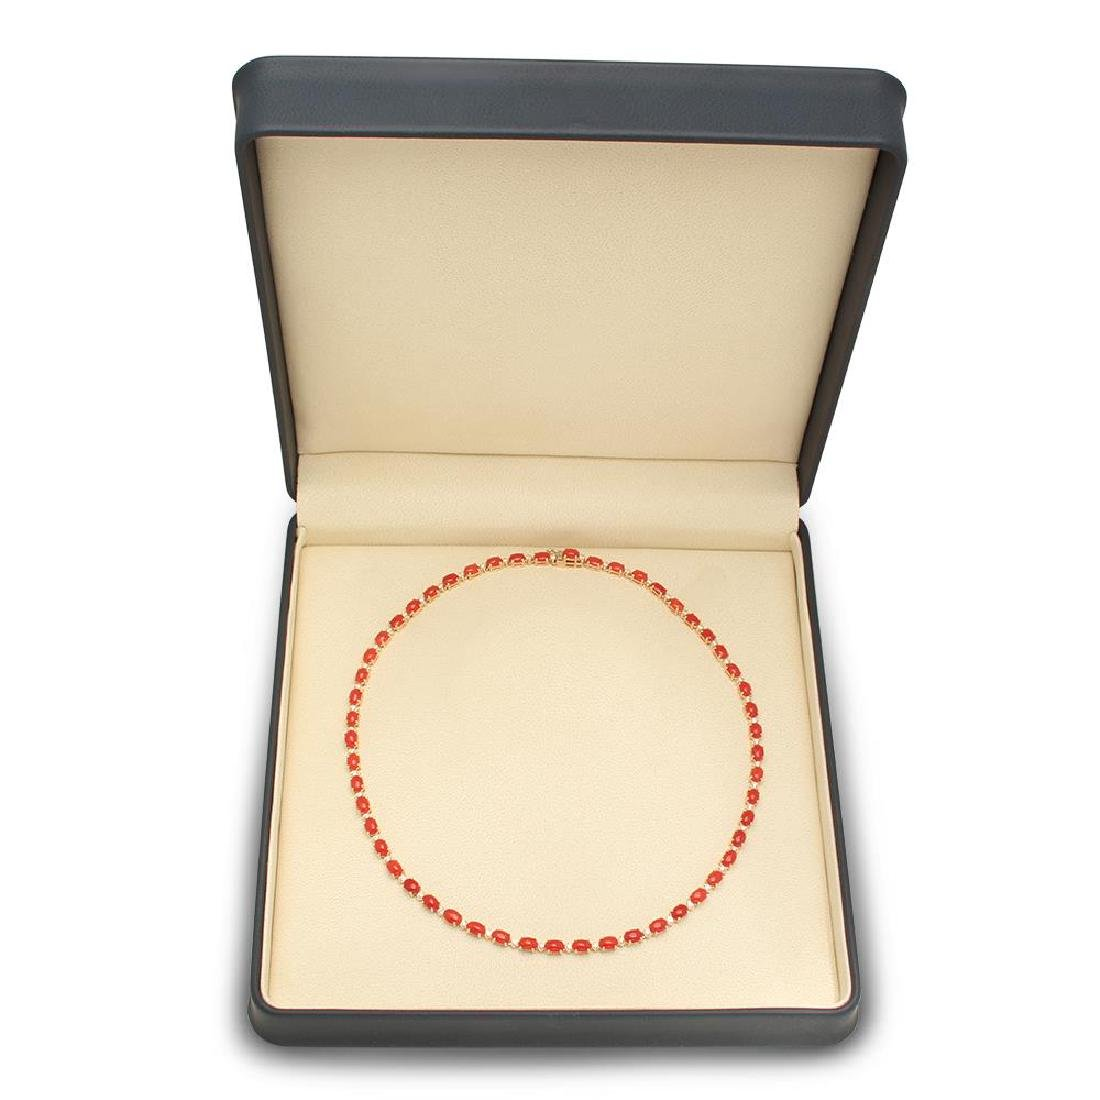 14K Gold 17.61ct Coral 1.17cts Diamond Necklace - 4